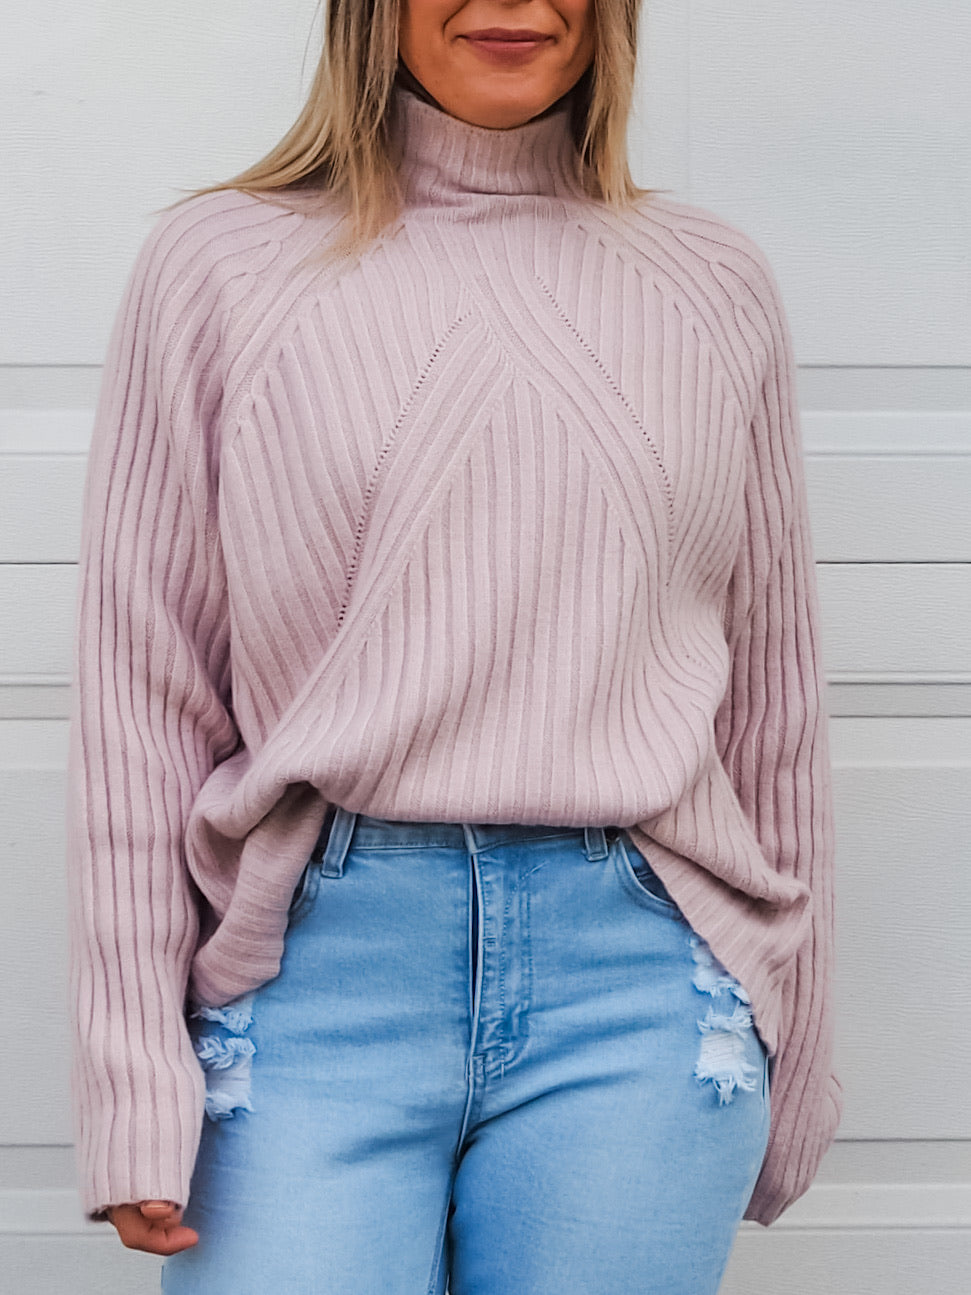 Tahlia Knit - Blush